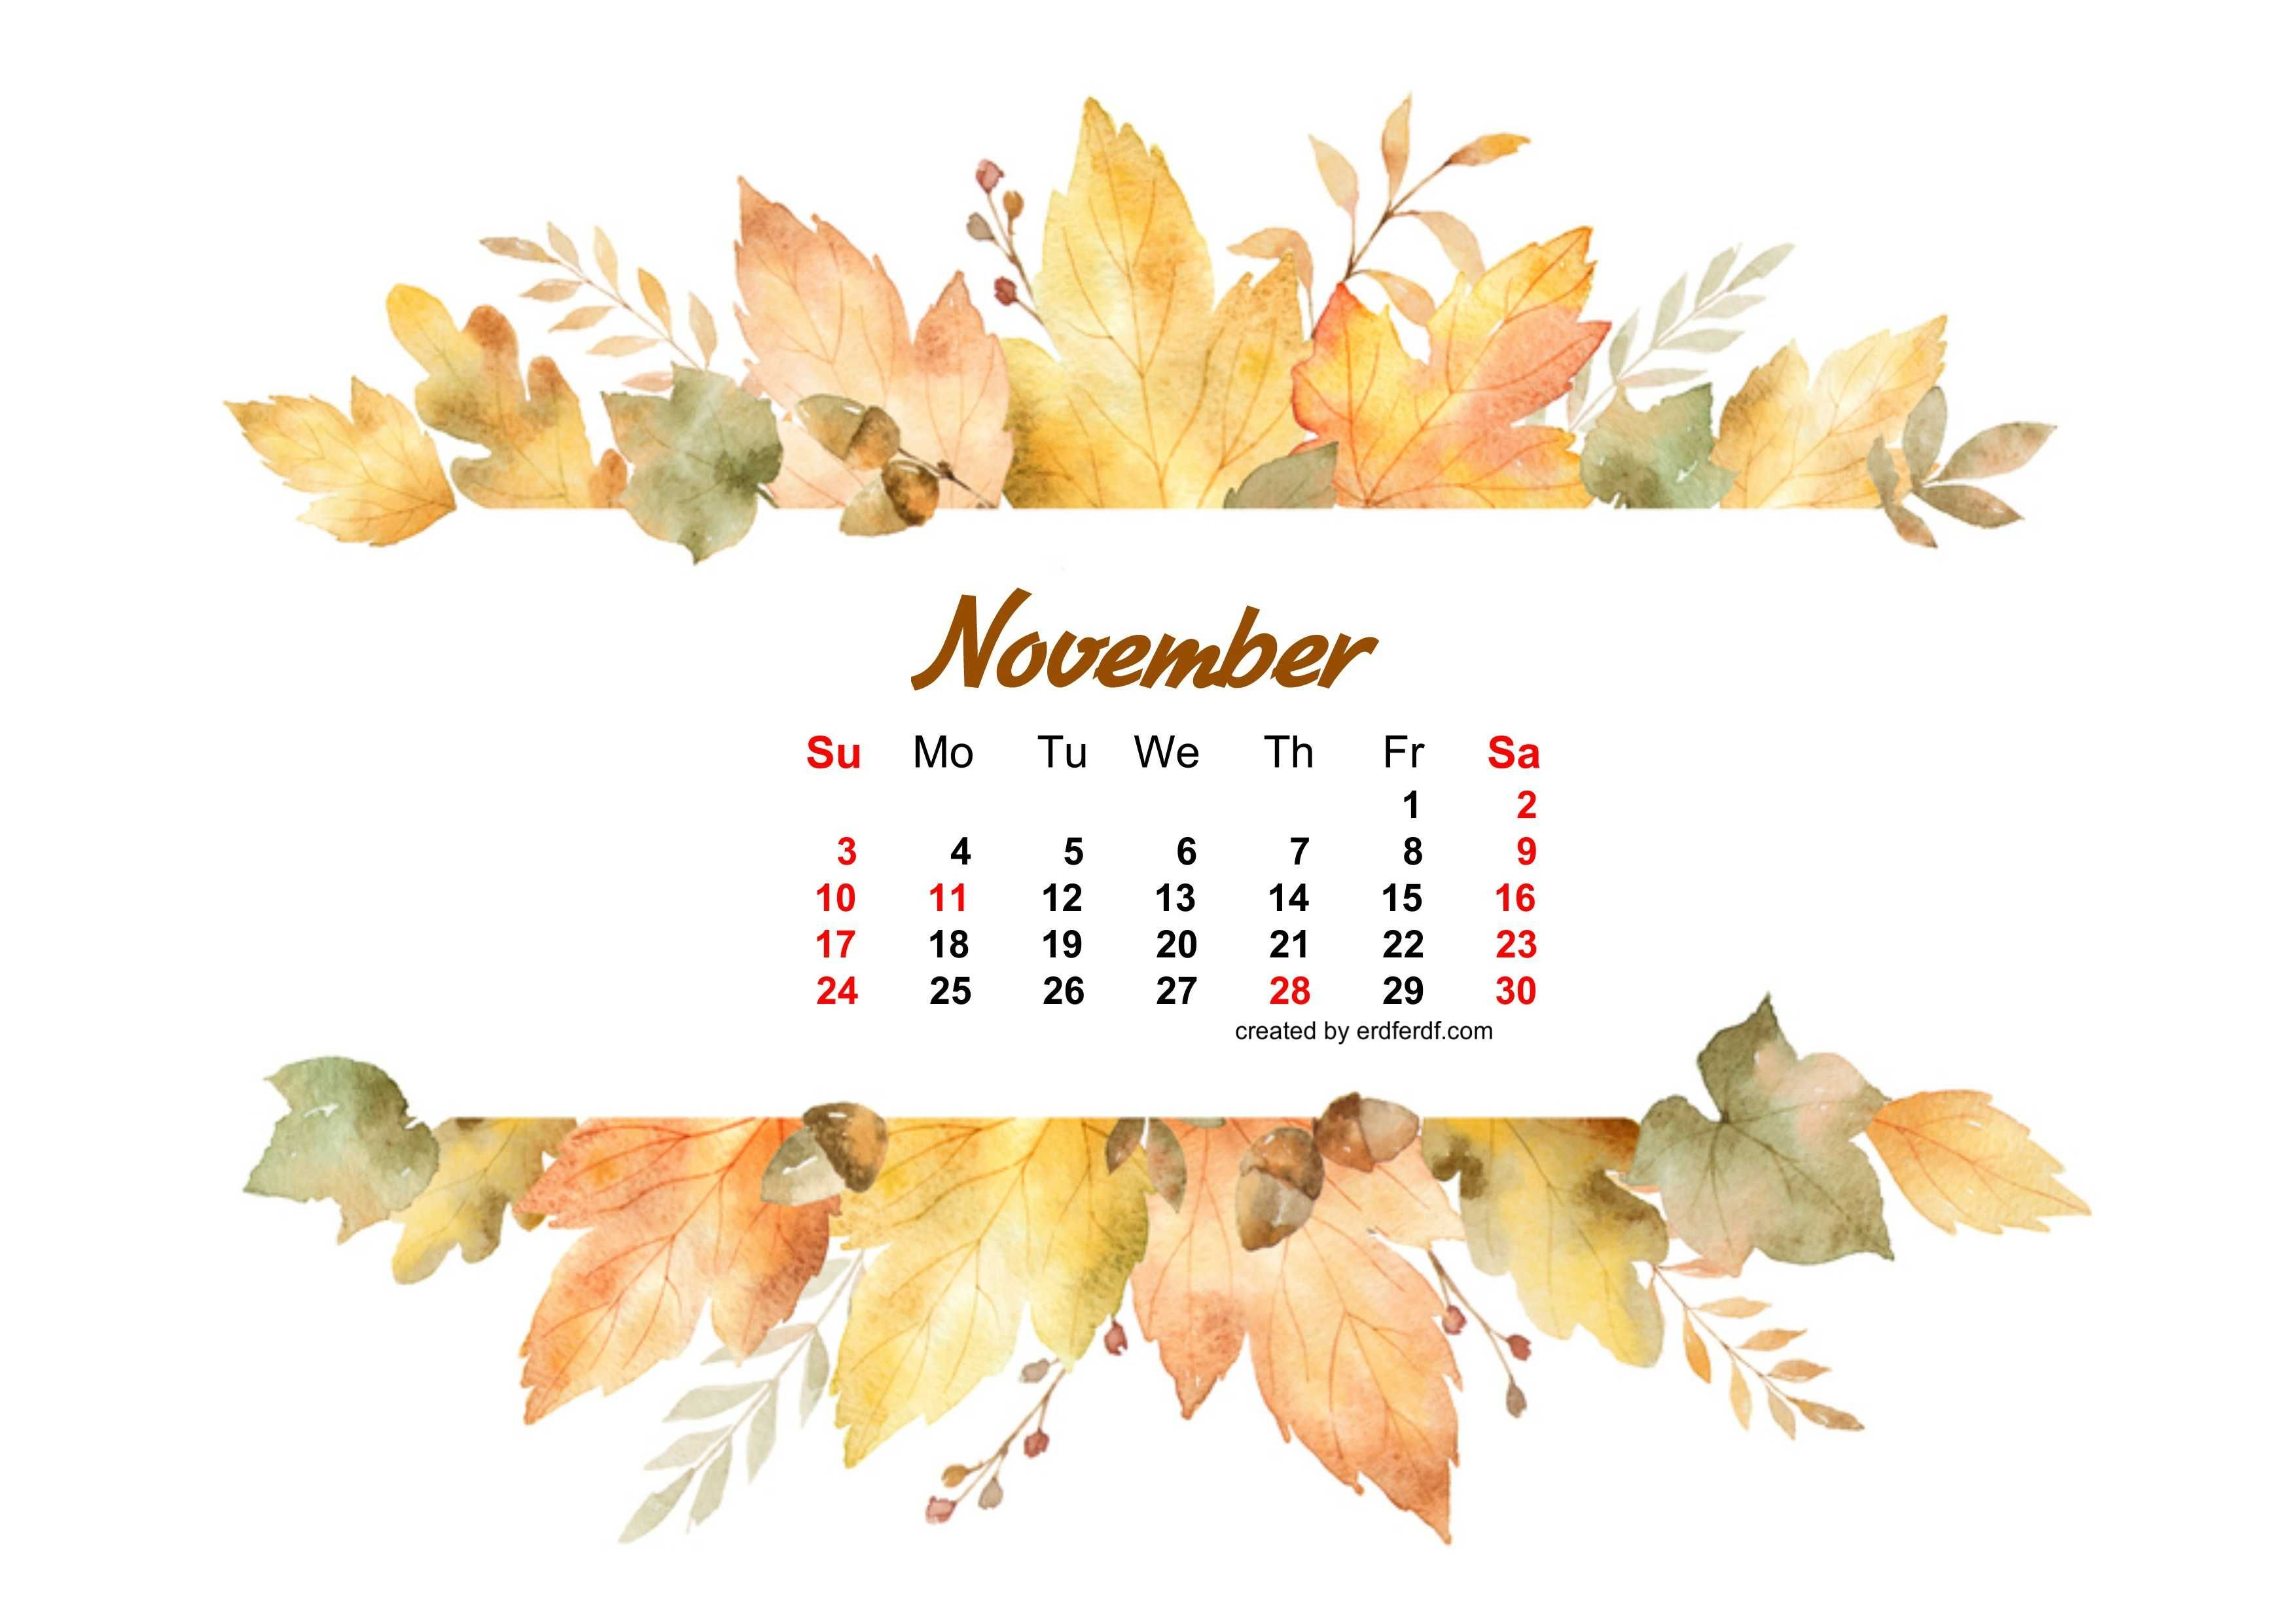 Watercolor Leaf Dried November 2019 Calendar Picture